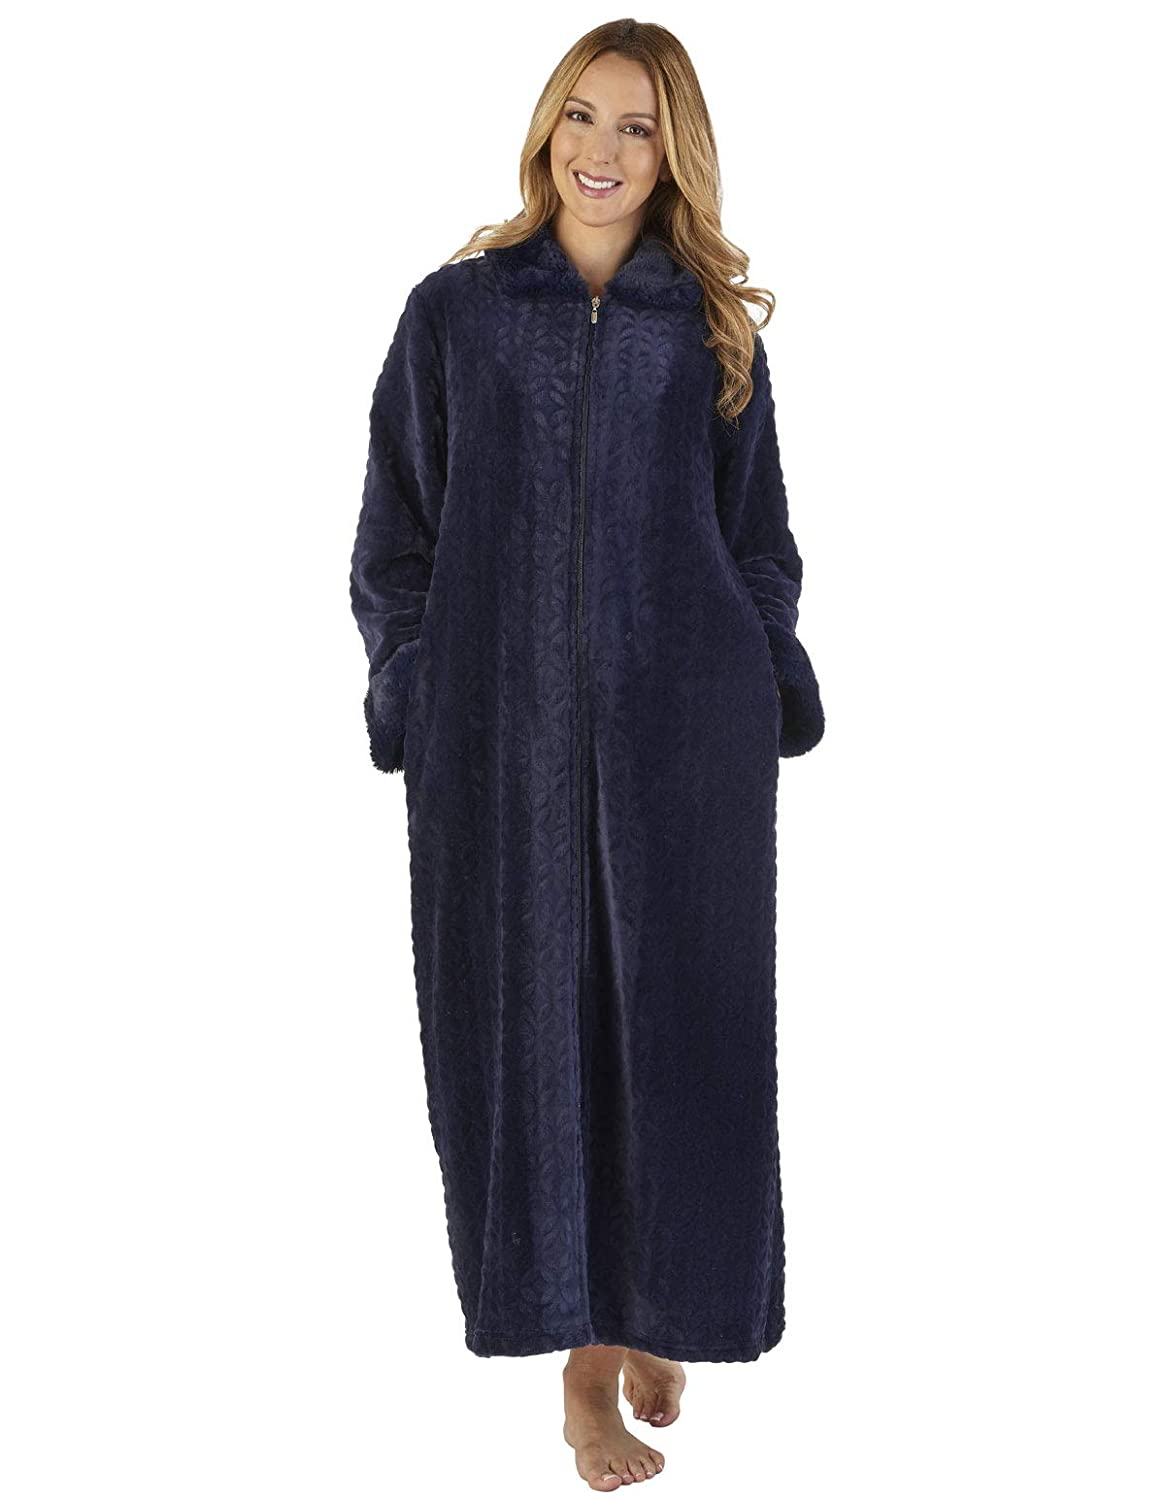 Slenderella HC2342 Women's Faux Collar Robe Loungewear Bath Dressing Gown